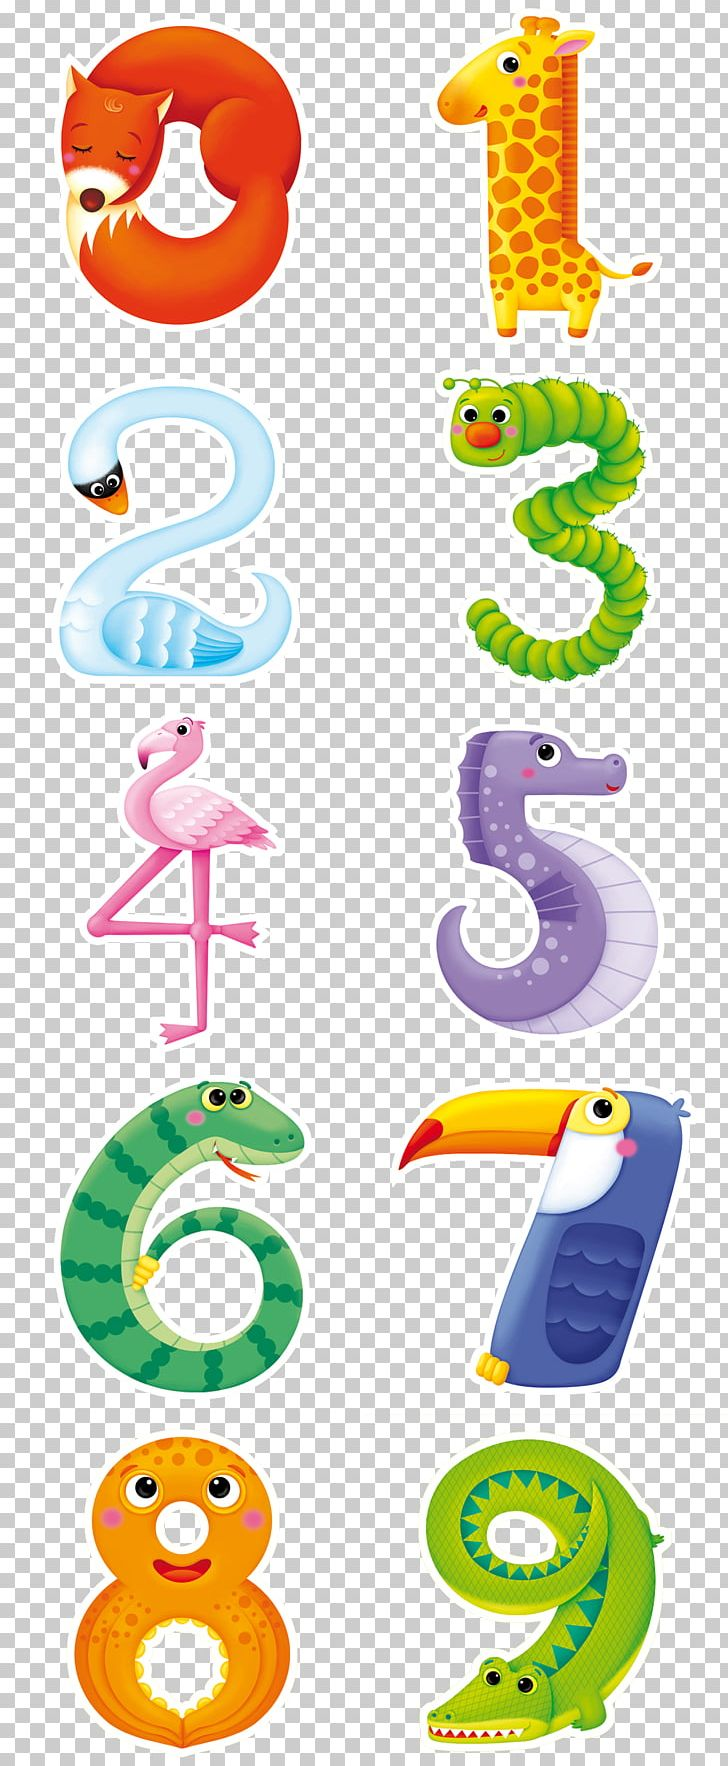 Text Numerical Digit Baby Toys PNG, Clipart, Animal, Area, Autumn, Autumn Town, Baby Toys Free PNG Download